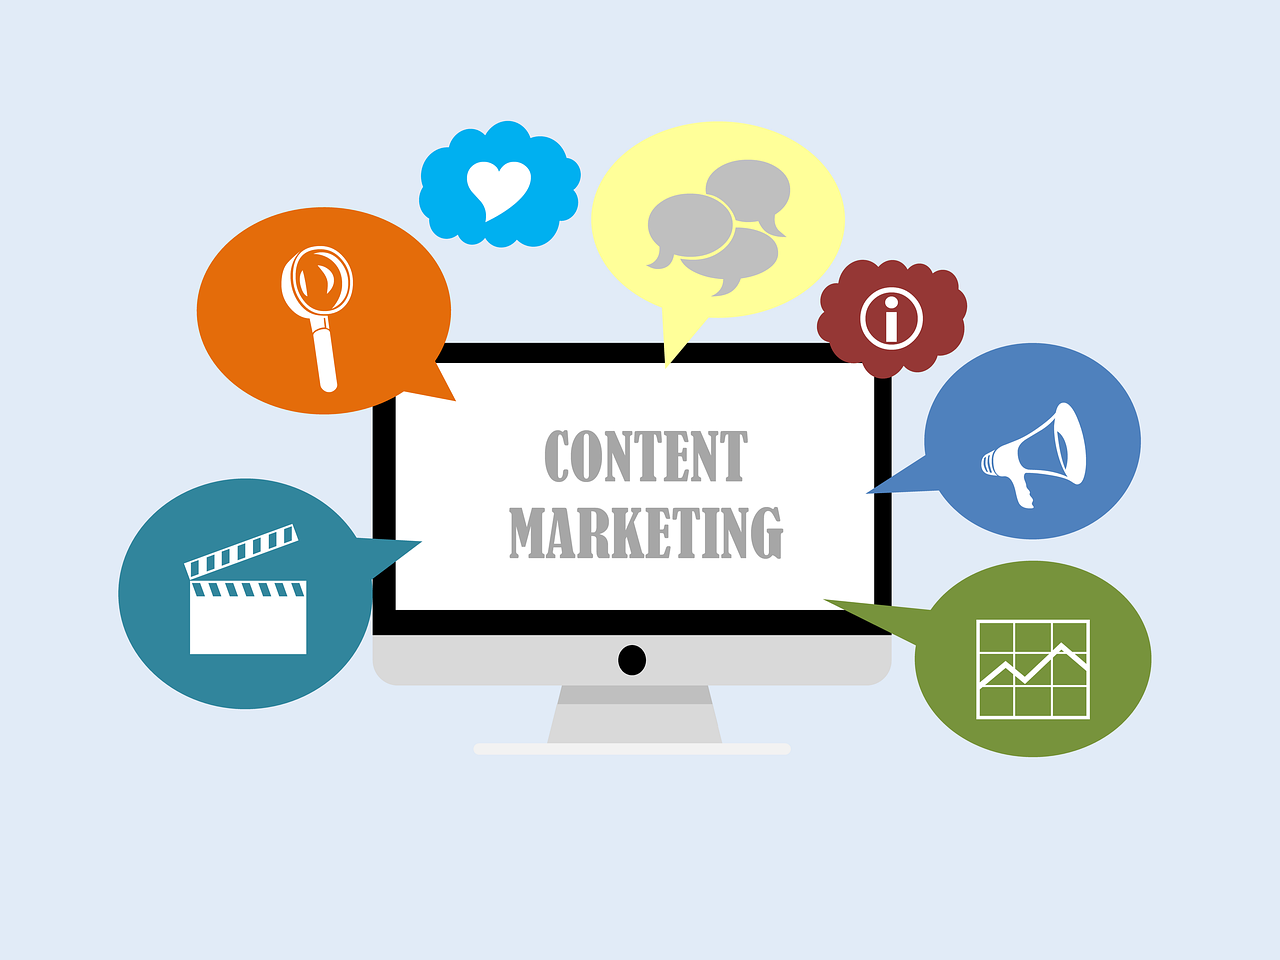 Is Content Marketing Worth It? The Truth About Content